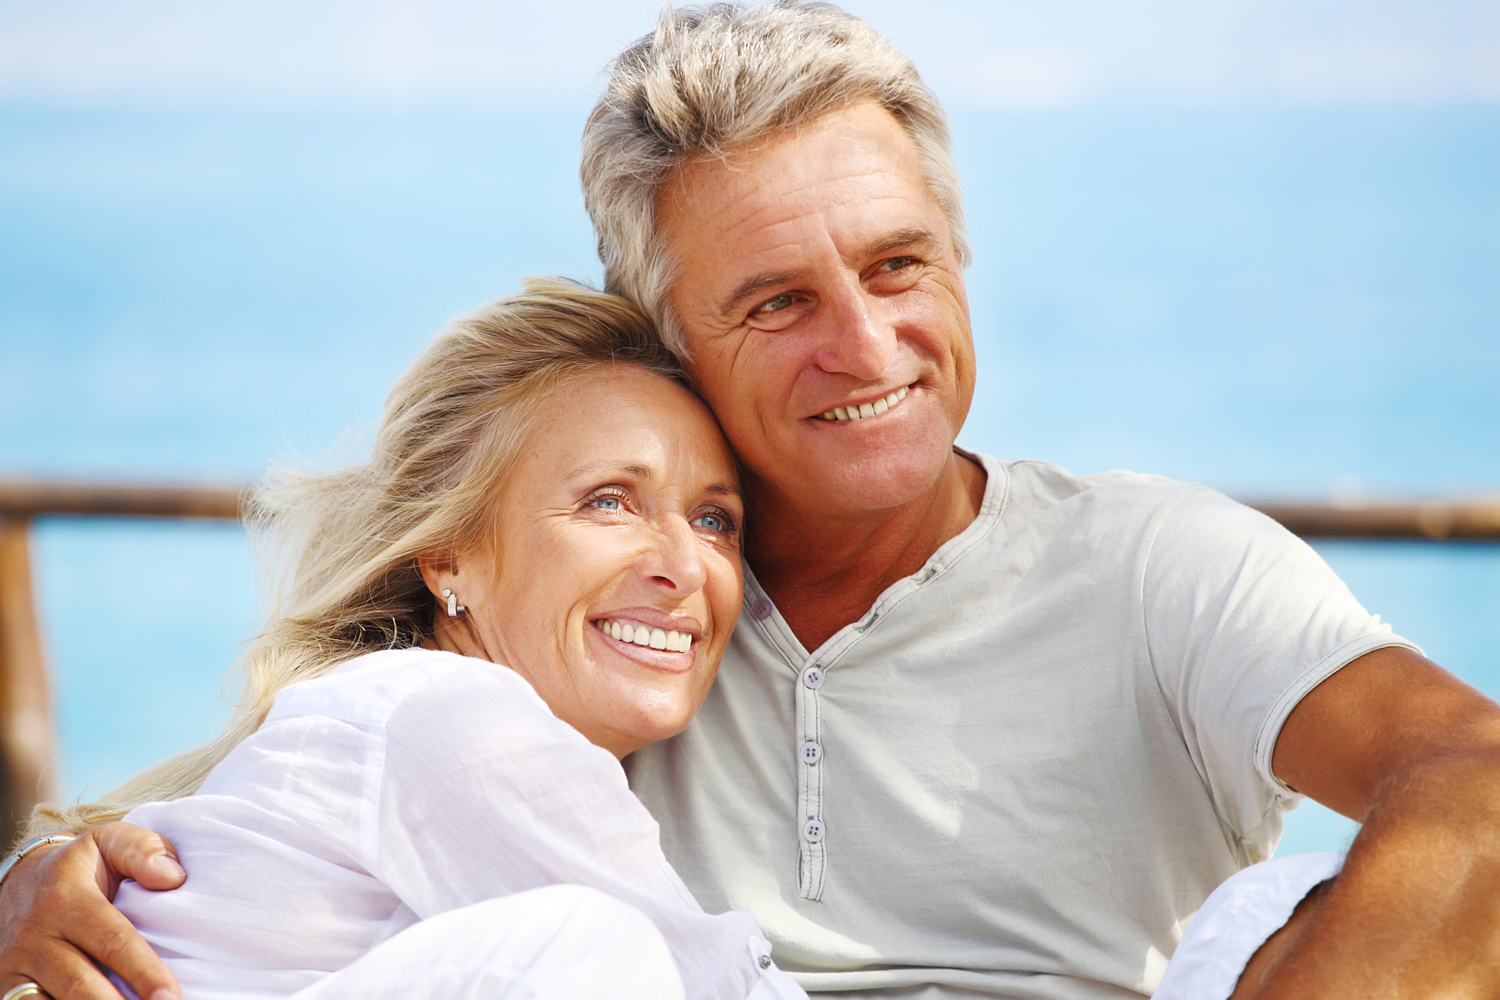 We offer customized hormone treatment plans for both men and women.